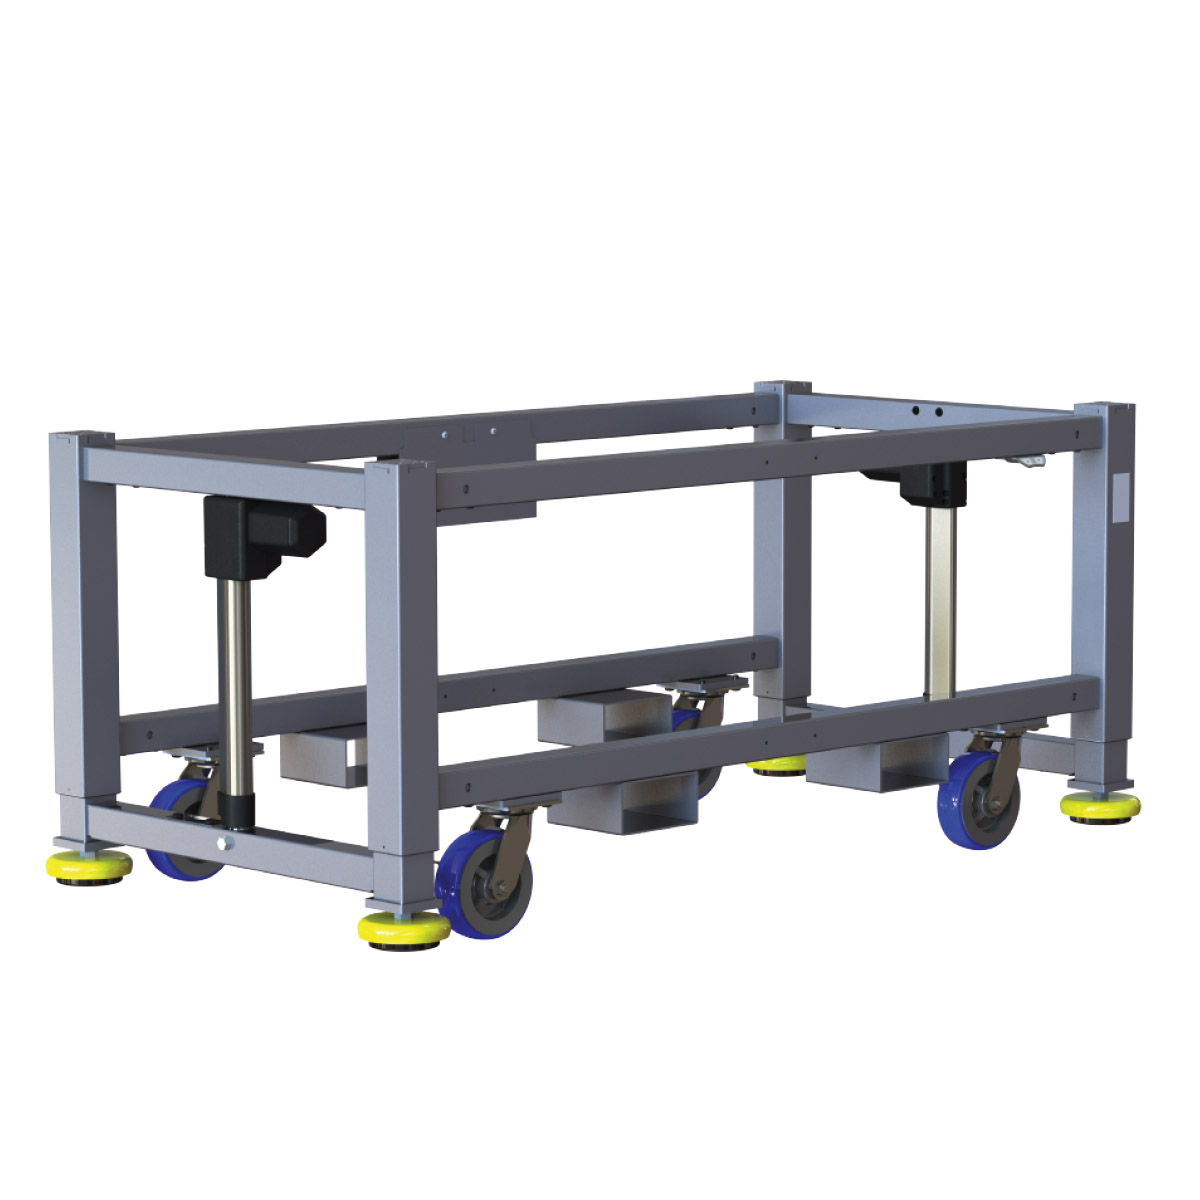 Machine base built durable and ergonomic